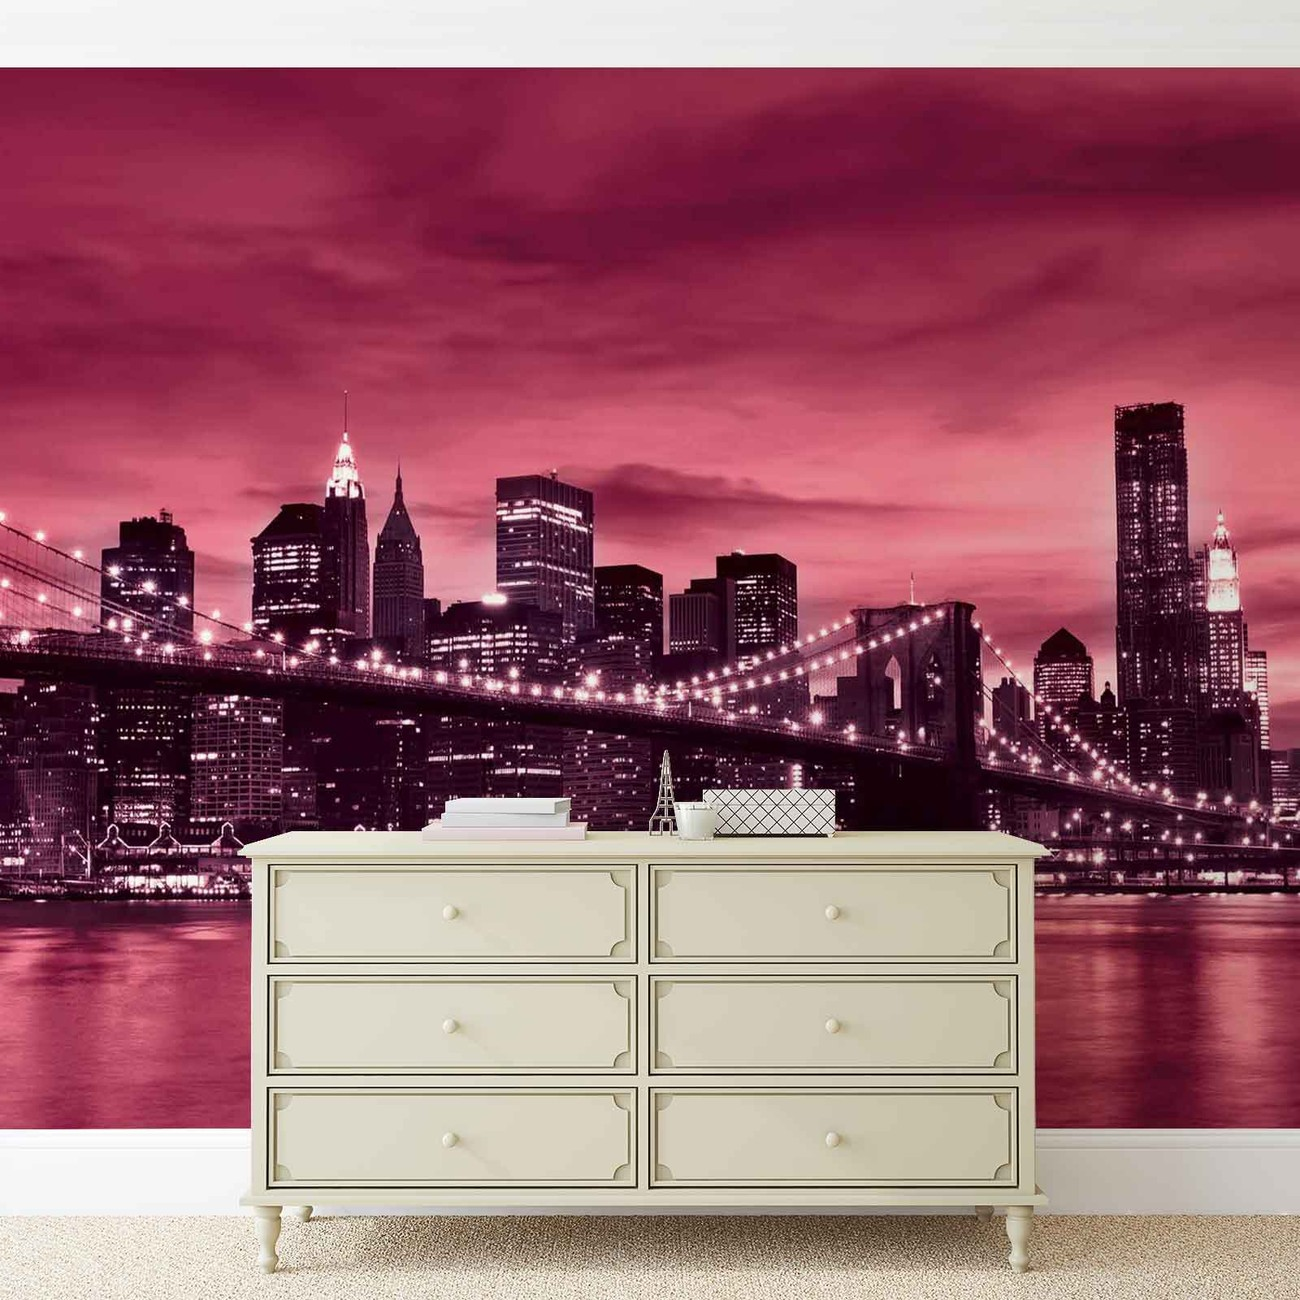 city brooklyn bridge new york city wall paper mural buy at europosters. Black Bedroom Furniture Sets. Home Design Ideas